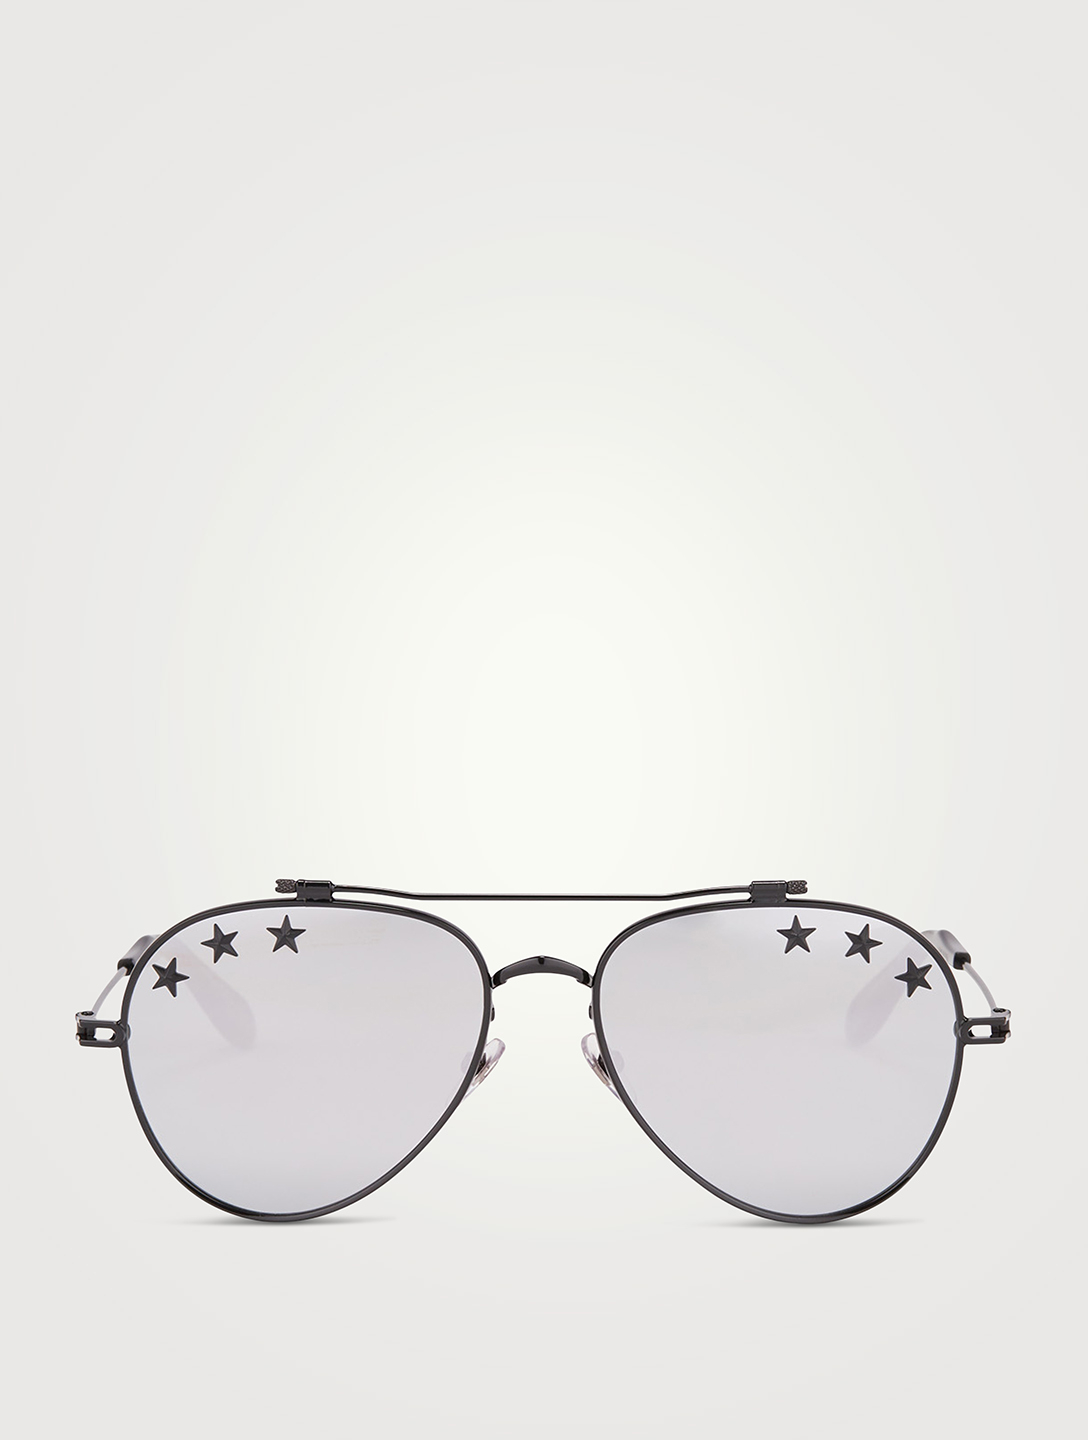 GIVENCHY Star Aviator Sunglasses Women's Silver